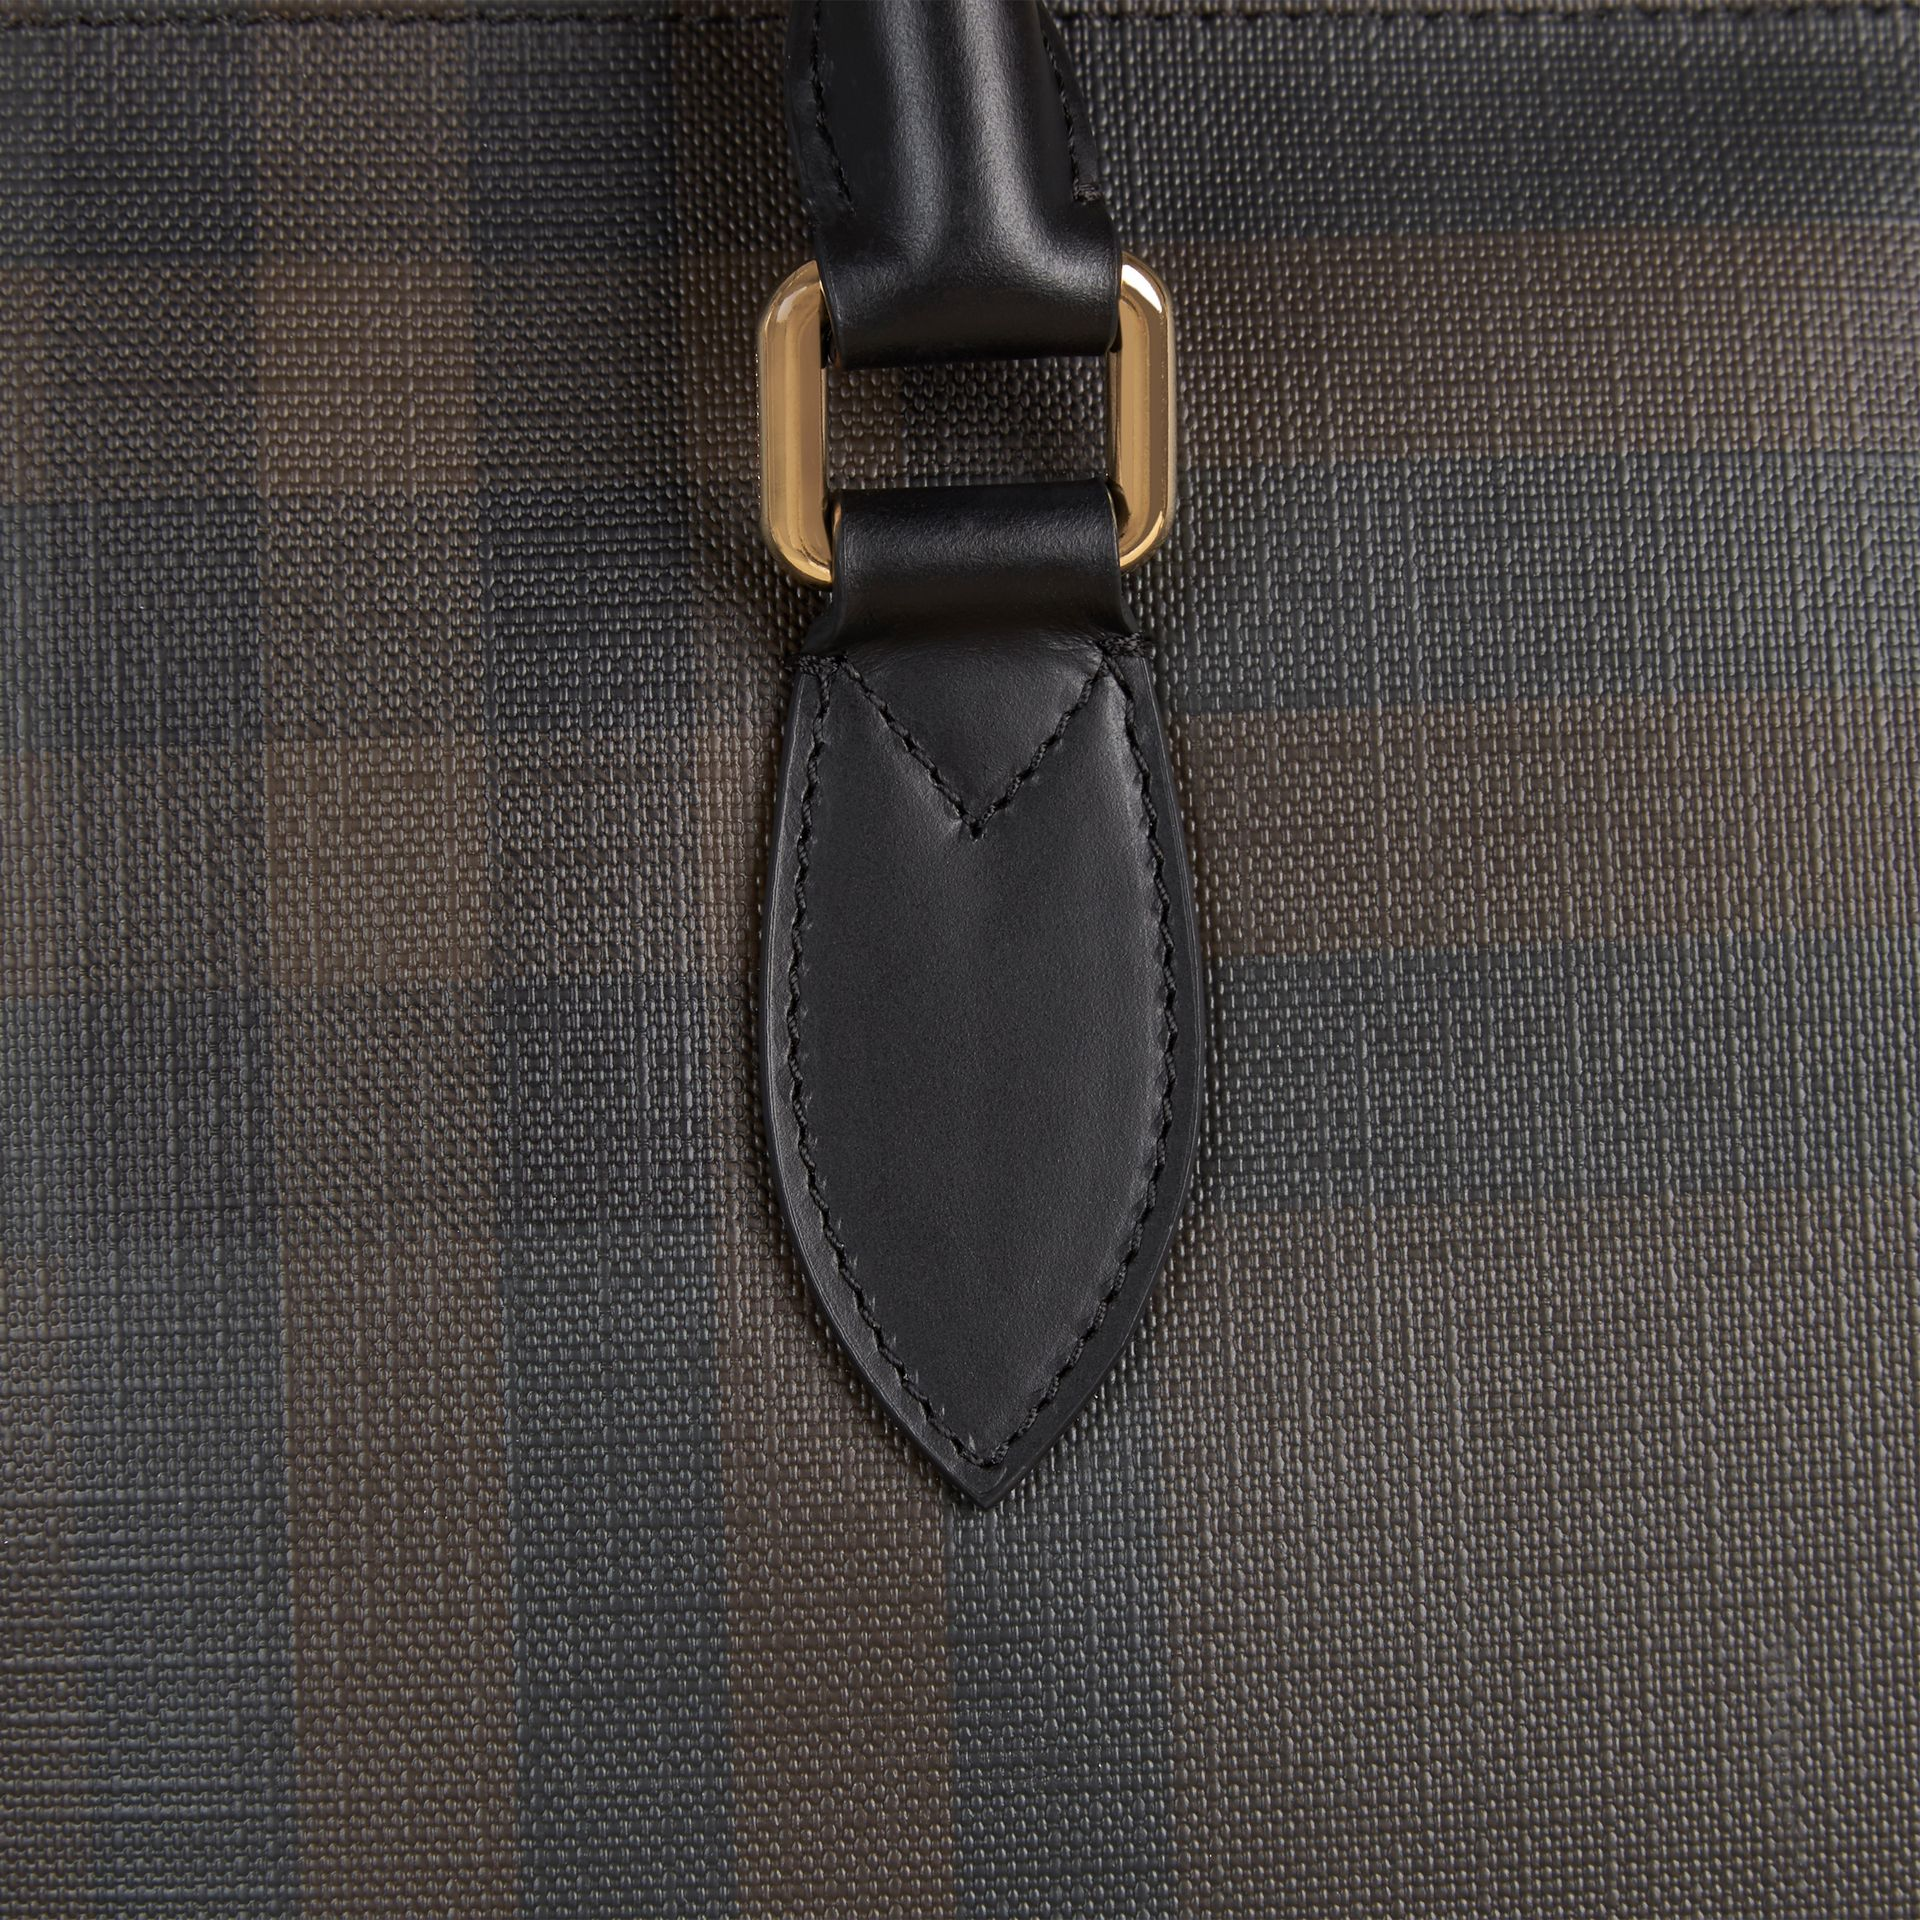 London Check Tote Bag in Black/chocolate - Men | Burberry Australia - gallery image 6